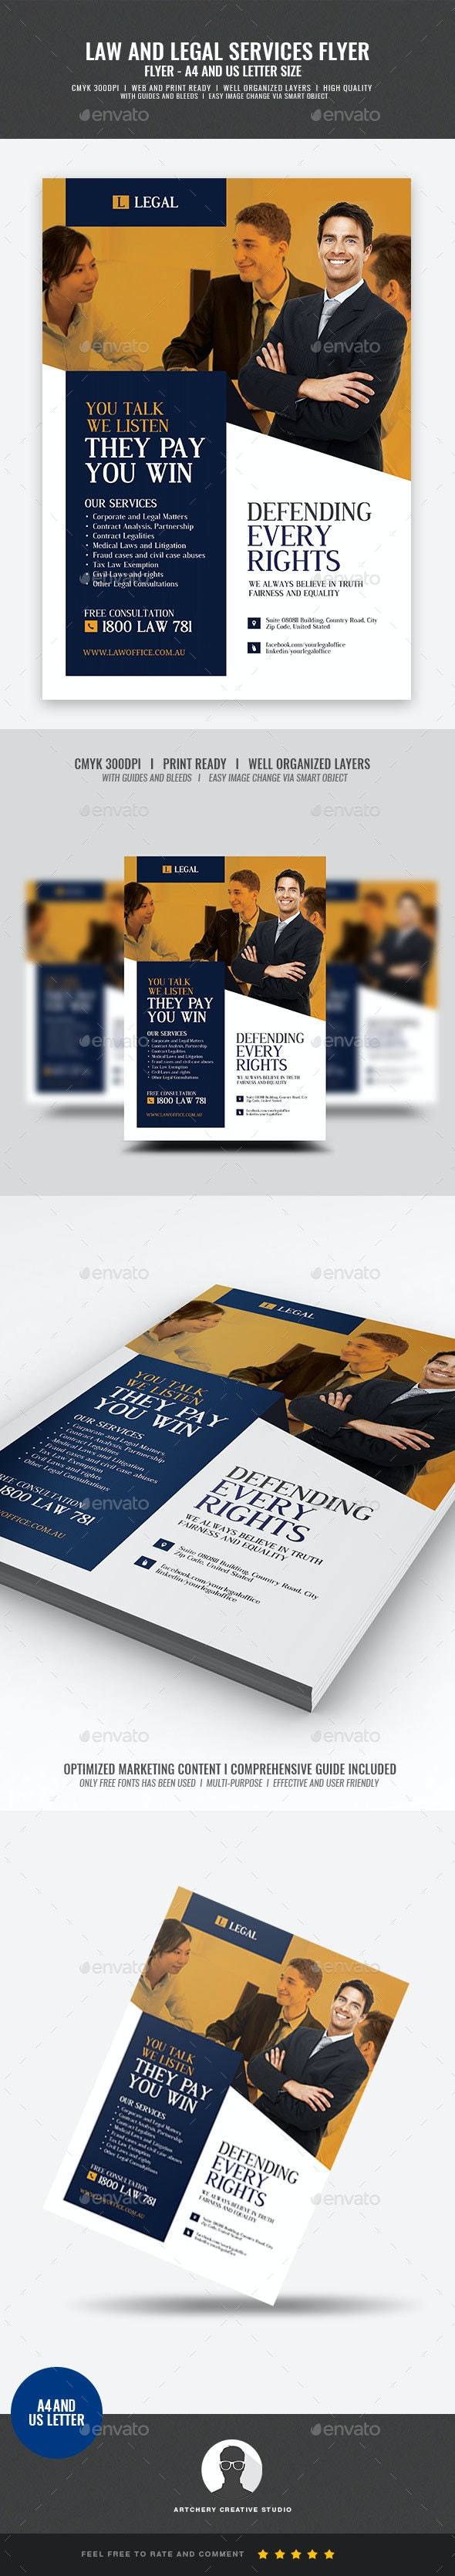 Legal and Law Services Flyer - Corporate Flyers